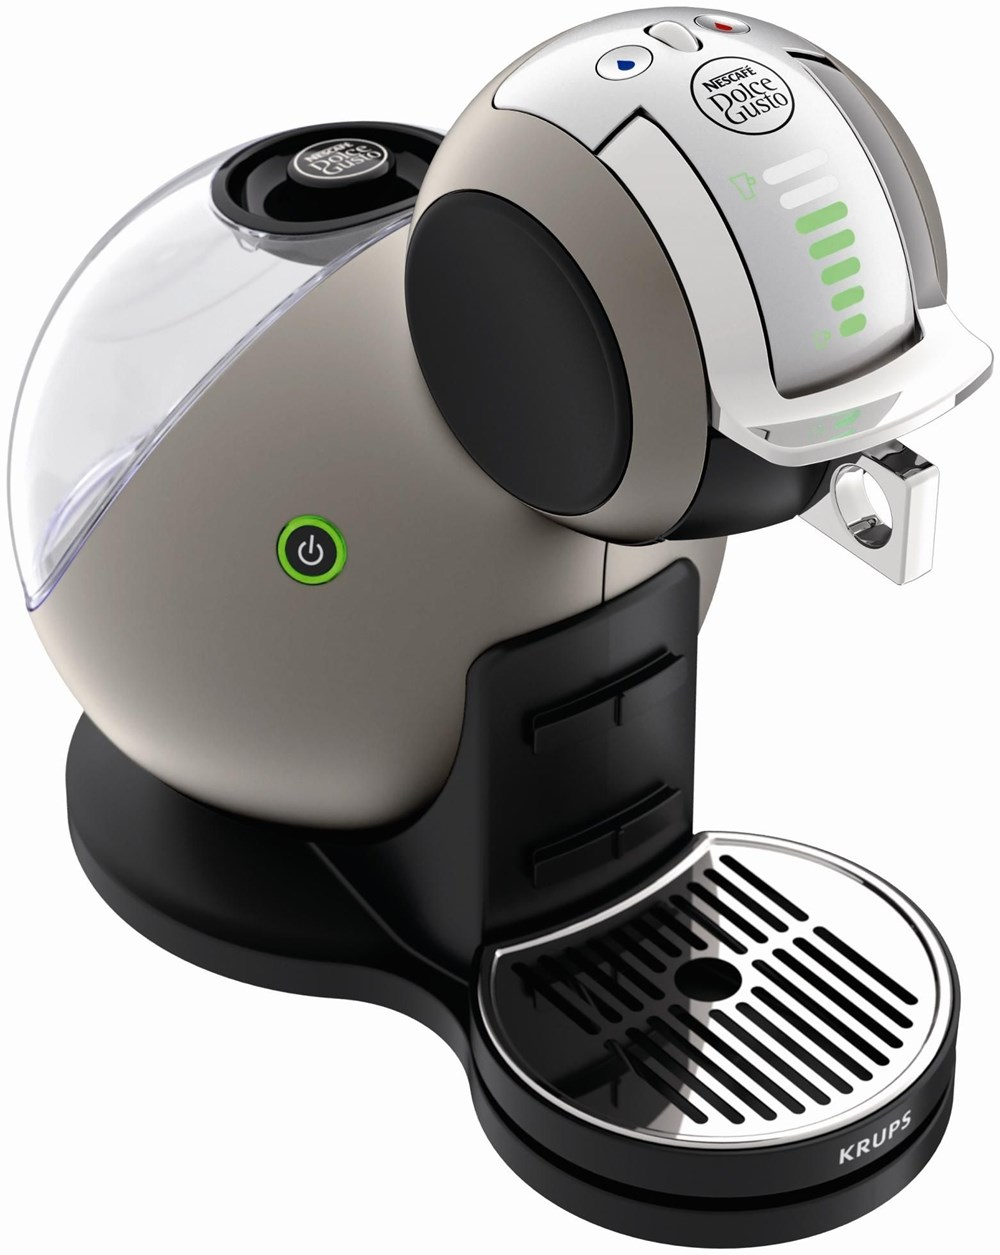 krups kp 230 t nescaf dolce gusto melody 3 automatic. Black Bedroom Furniture Sets. Home Design Ideas